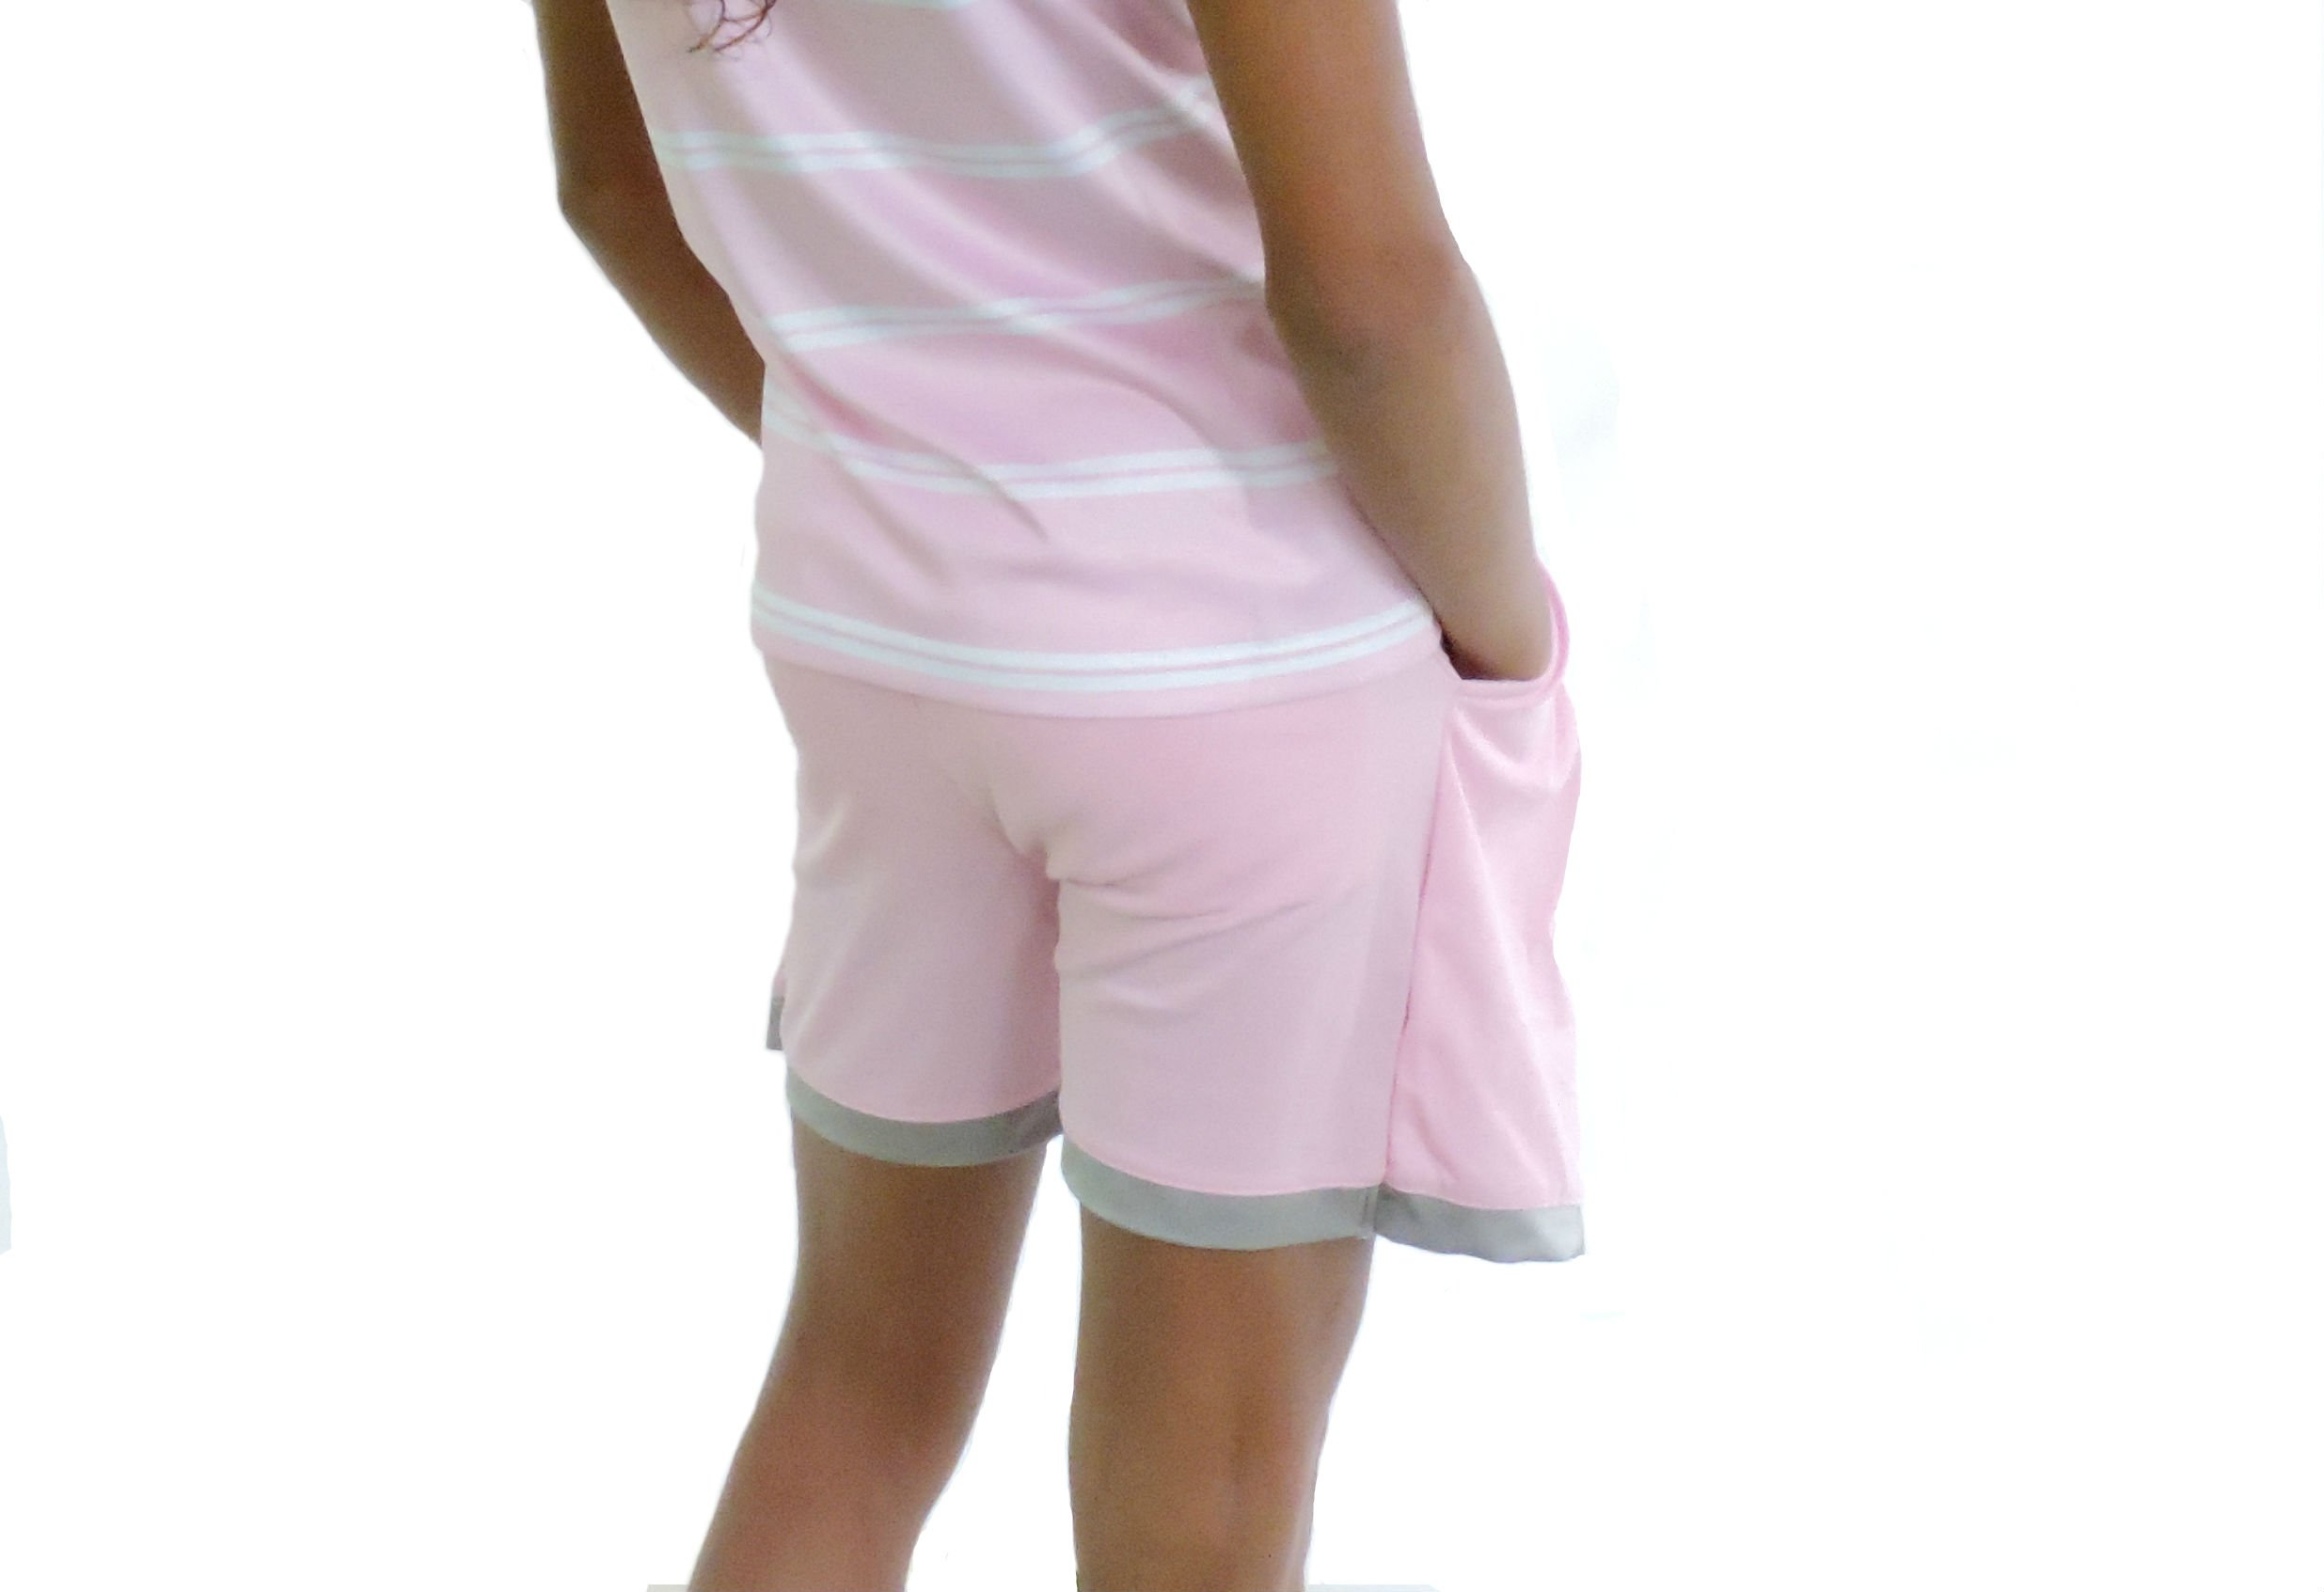 Sephlin - Natalia Pink and Silver Junior Girls Pleats Skort (12-14 Years Old)